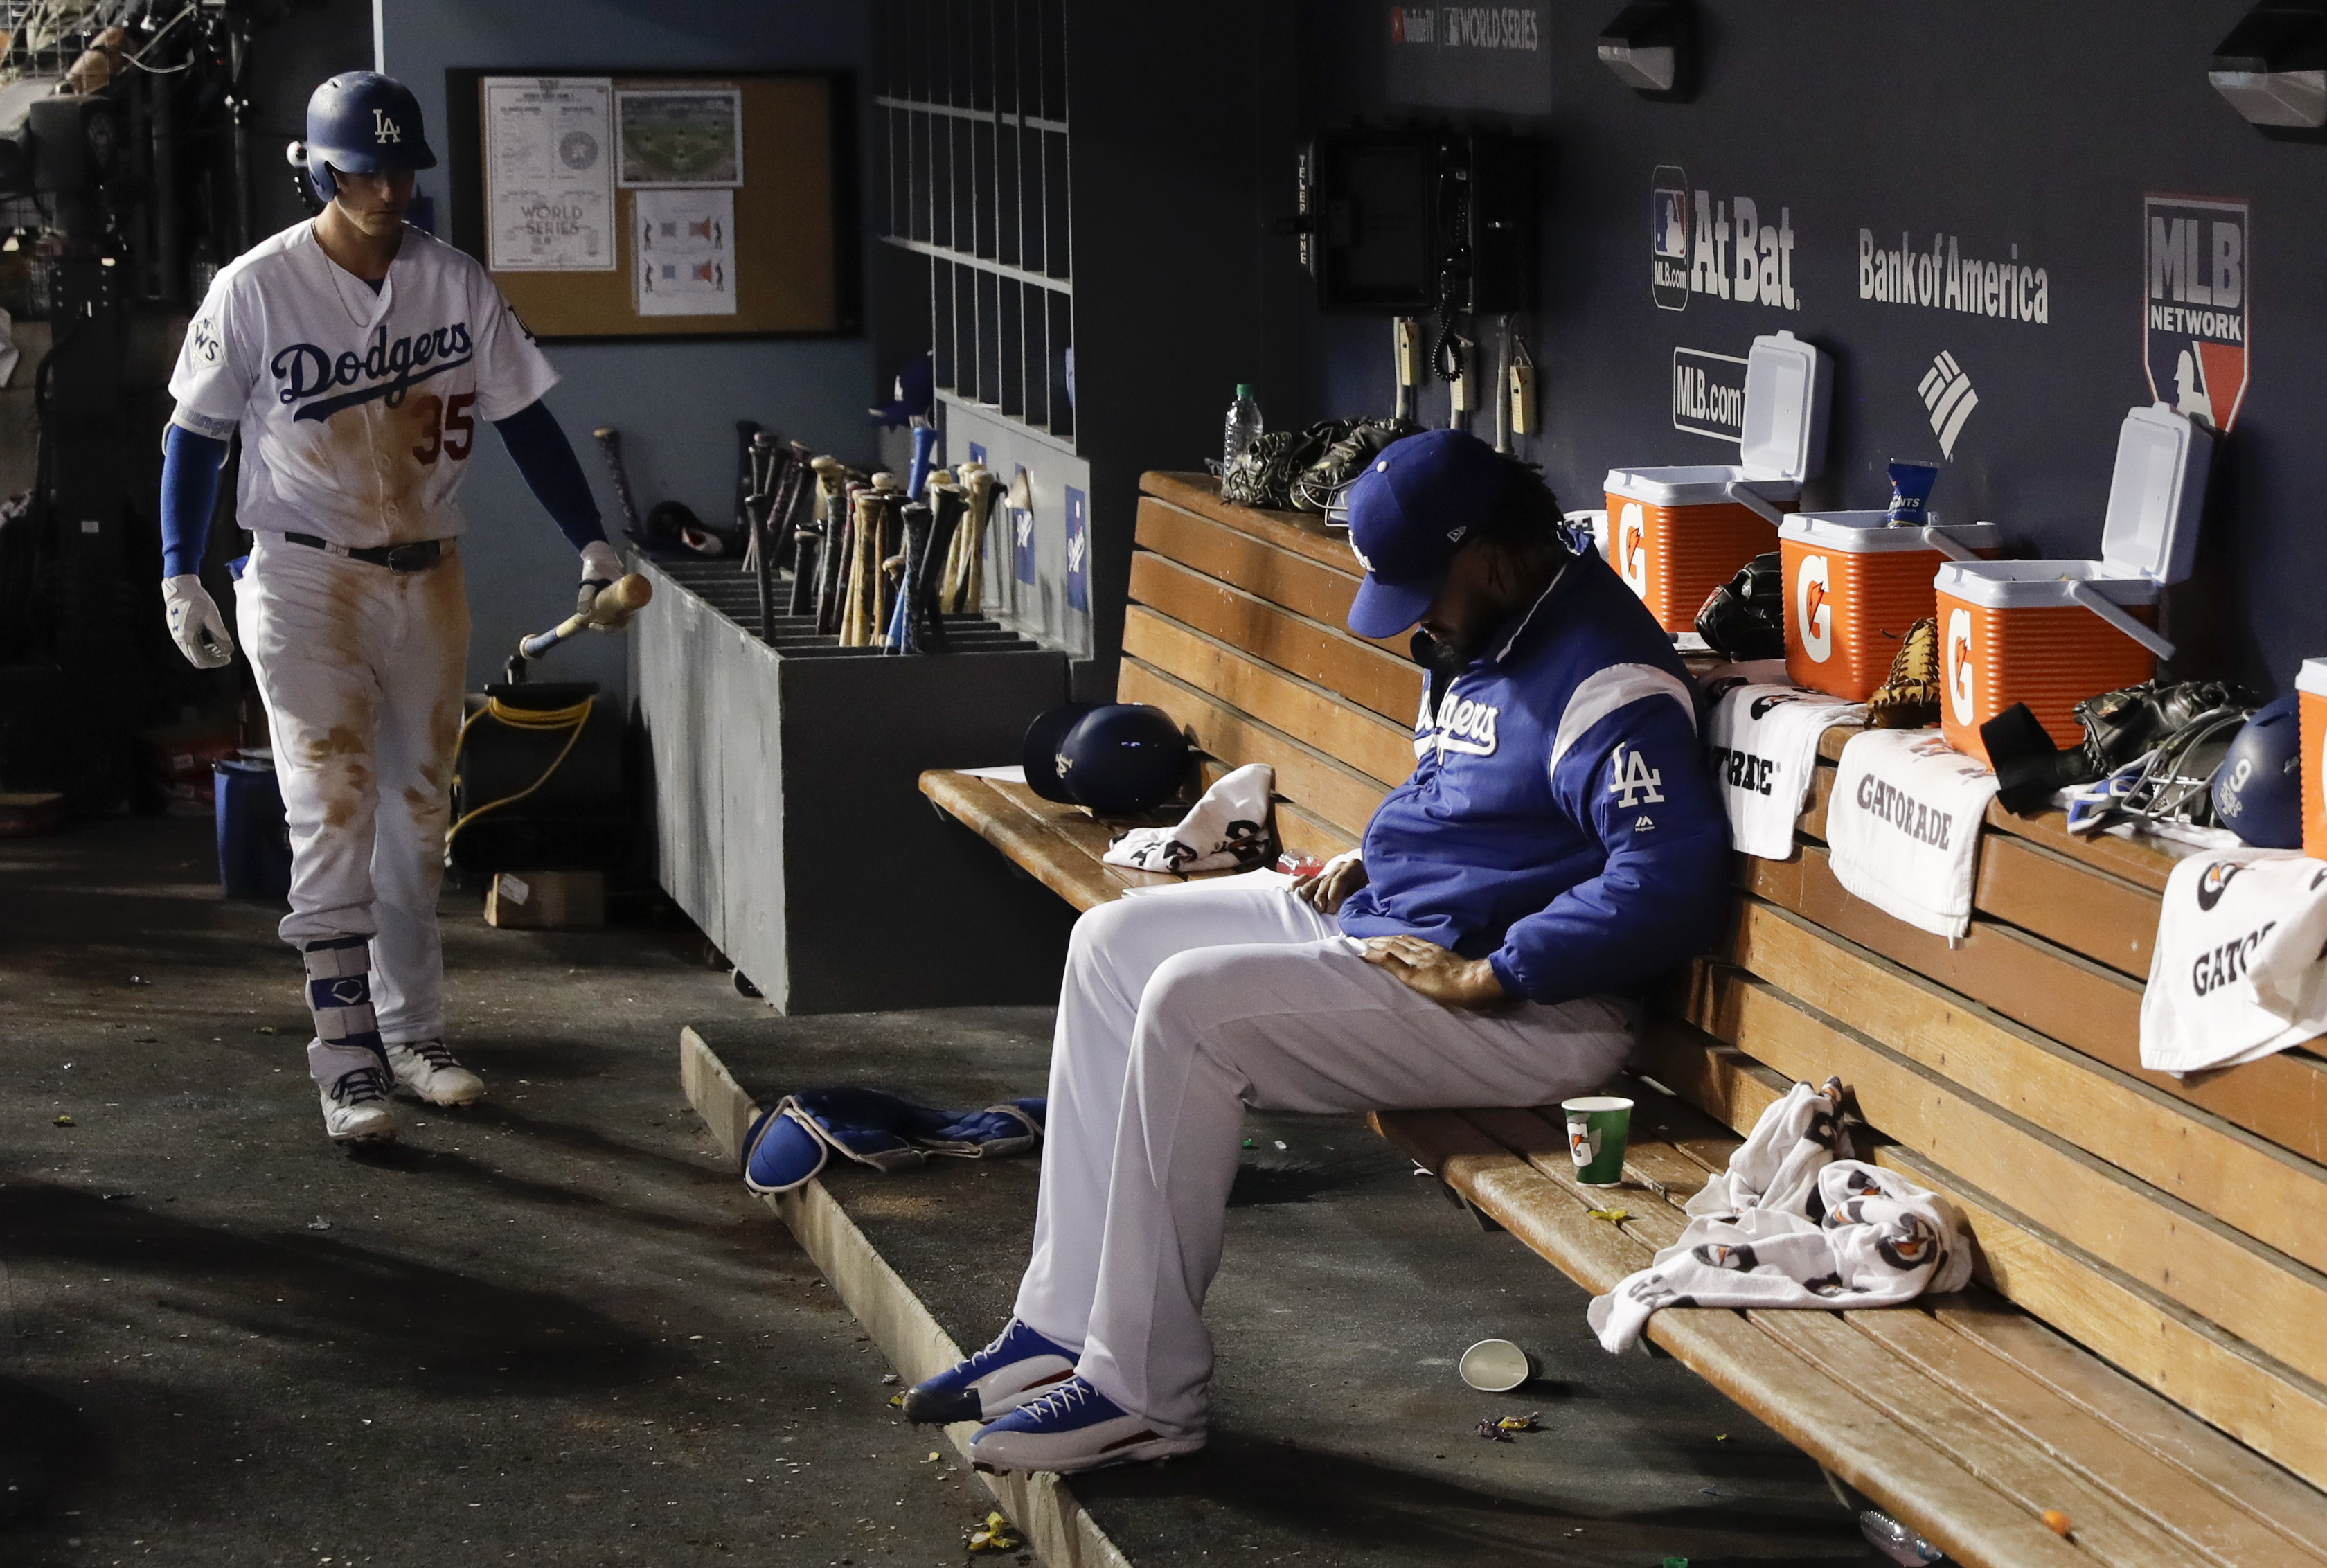 Los Angeles Dodgers relief pitcher Kenley Jansen sits in the dugout during the ninth inning of Game 2 of baseball's World Series against the Houston Astros Wednesday, Oct. 25, 2017, in Los Angeles. (AP Photo/Matt Slocum)